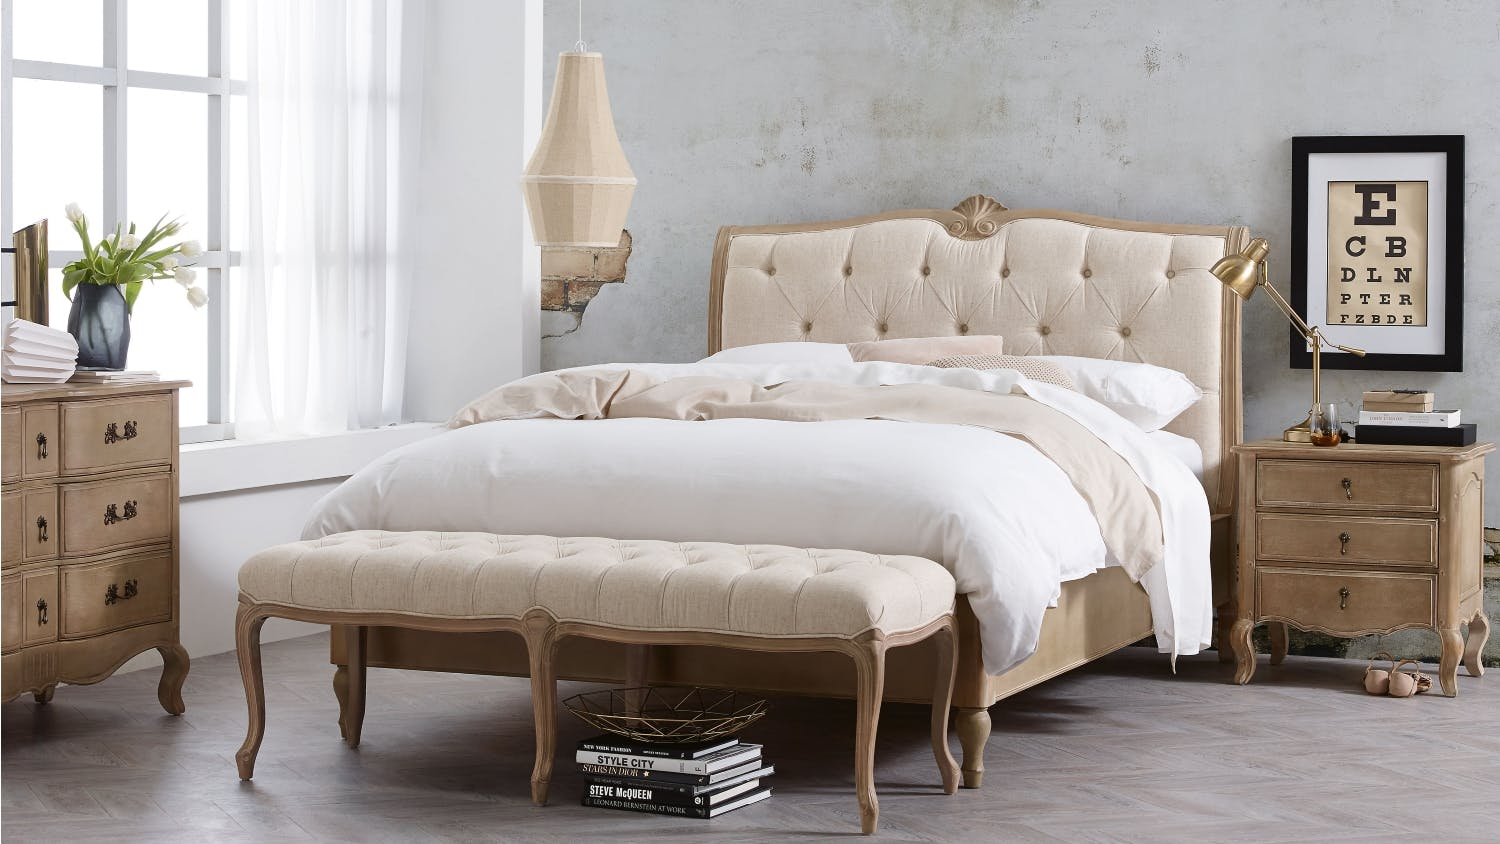 Bench By Bed: Letoile Bed Bench